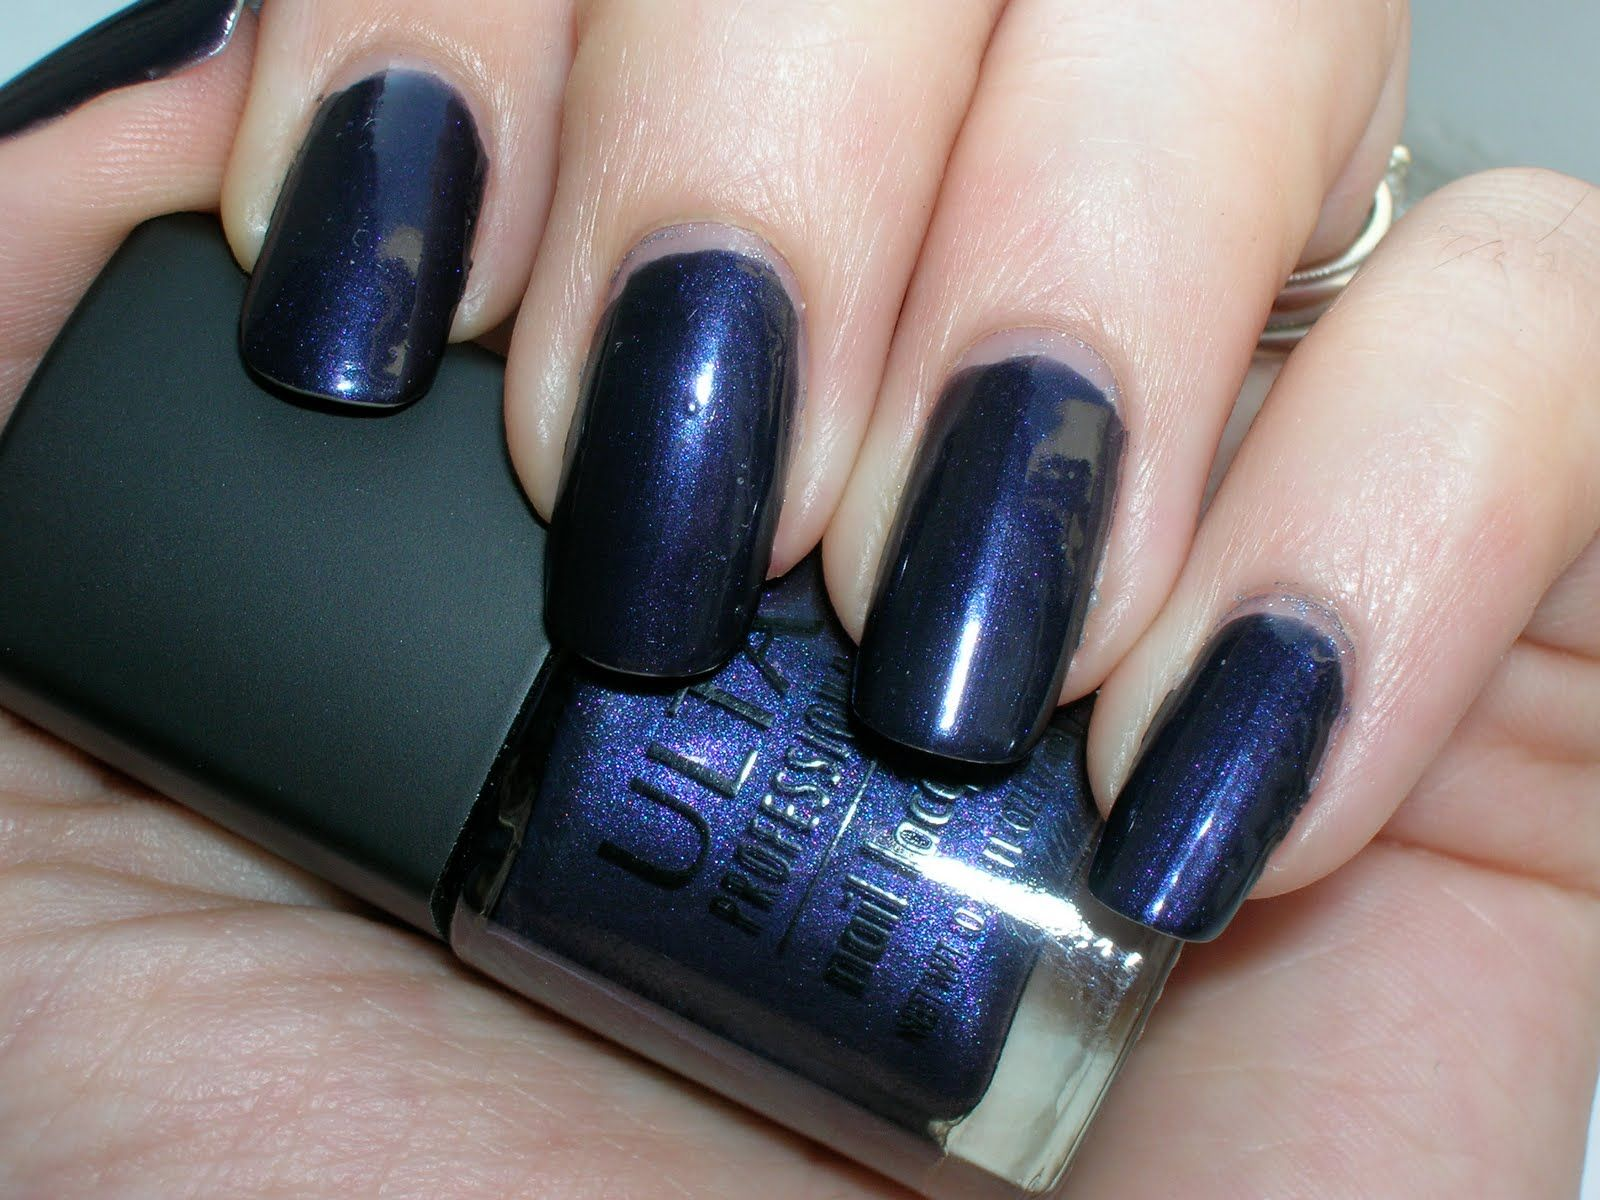 funky nail polish colors | Ulta Professional After Hours and a Word ...